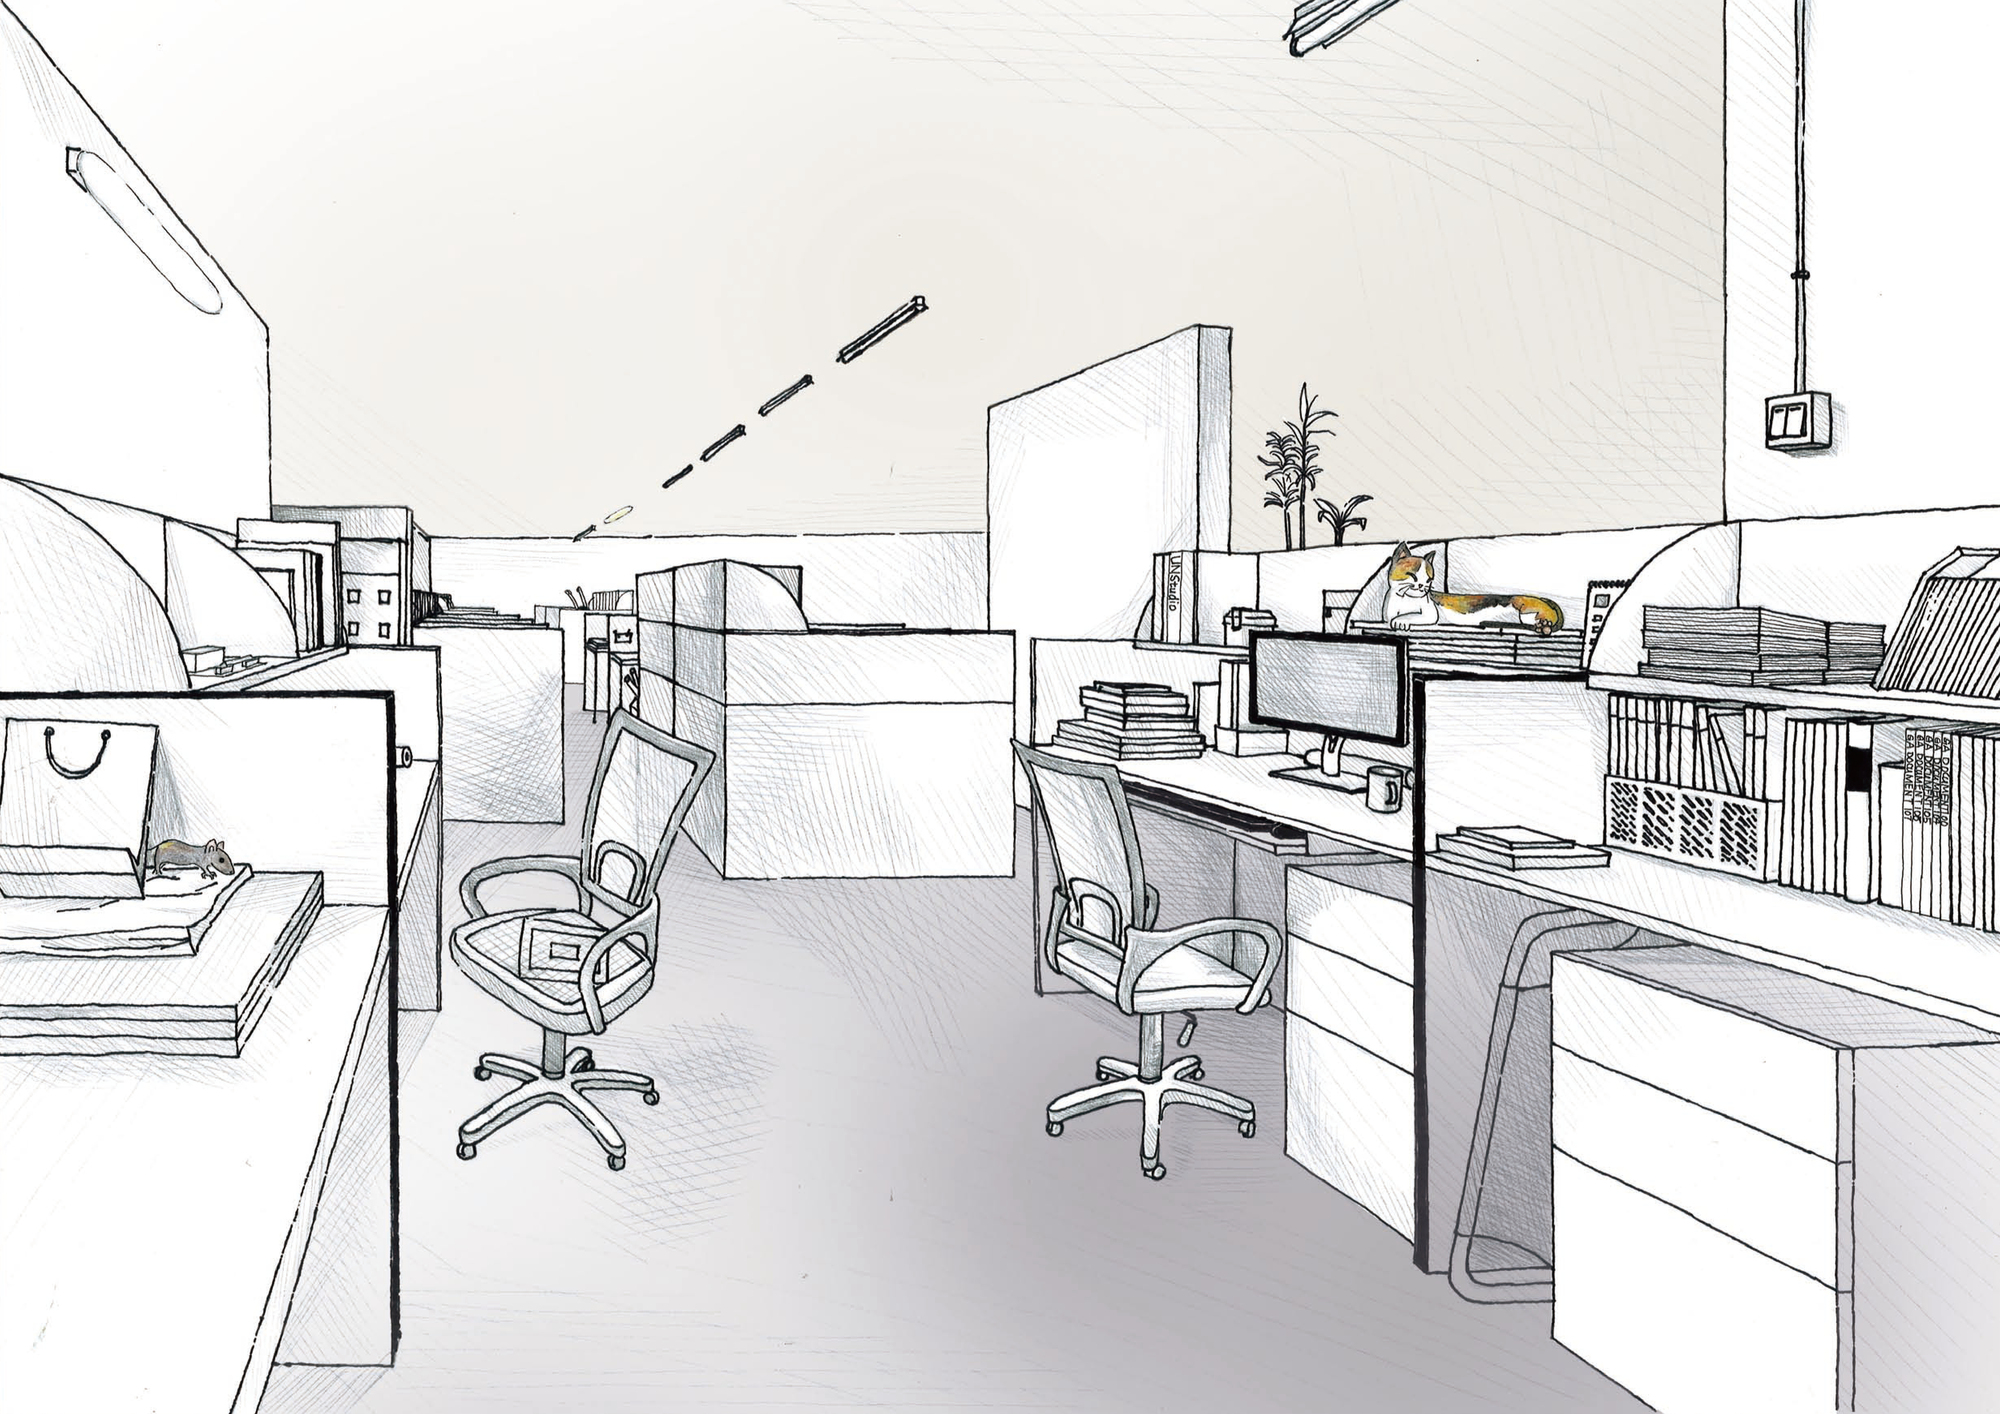 Gallery of 42 Sketches, Drawings and Diagrams of Desks and ...